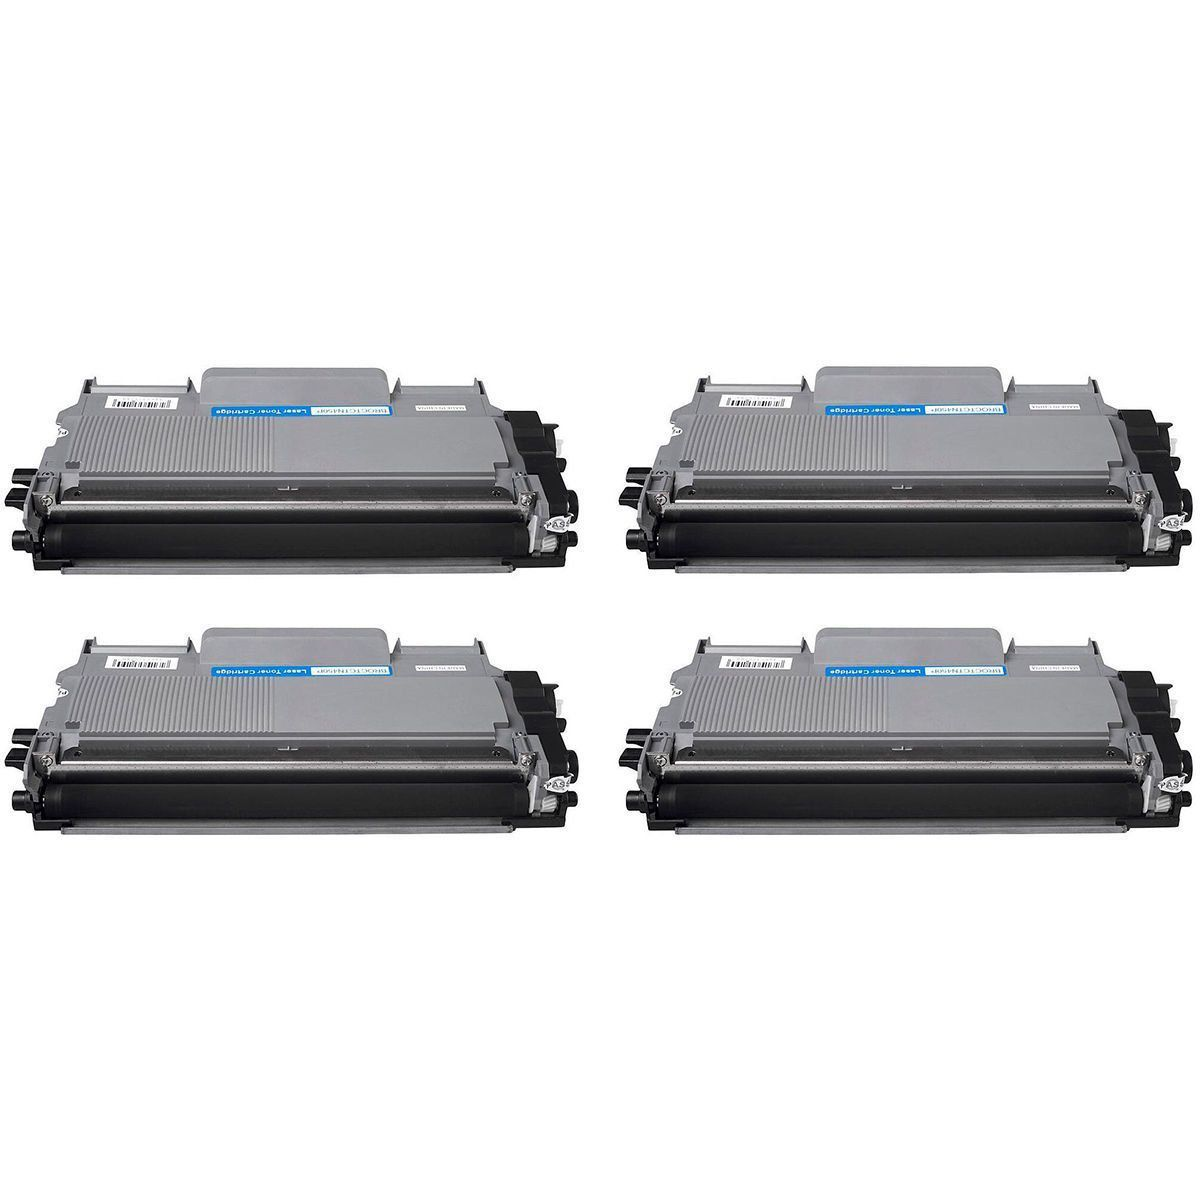 Compatível: Kit 4x Toner TN410 TN420 TN450 para Brother HL2132 HL2210 HL2250 DCP-7055 7065 7360 7860 / Preto / 2.600